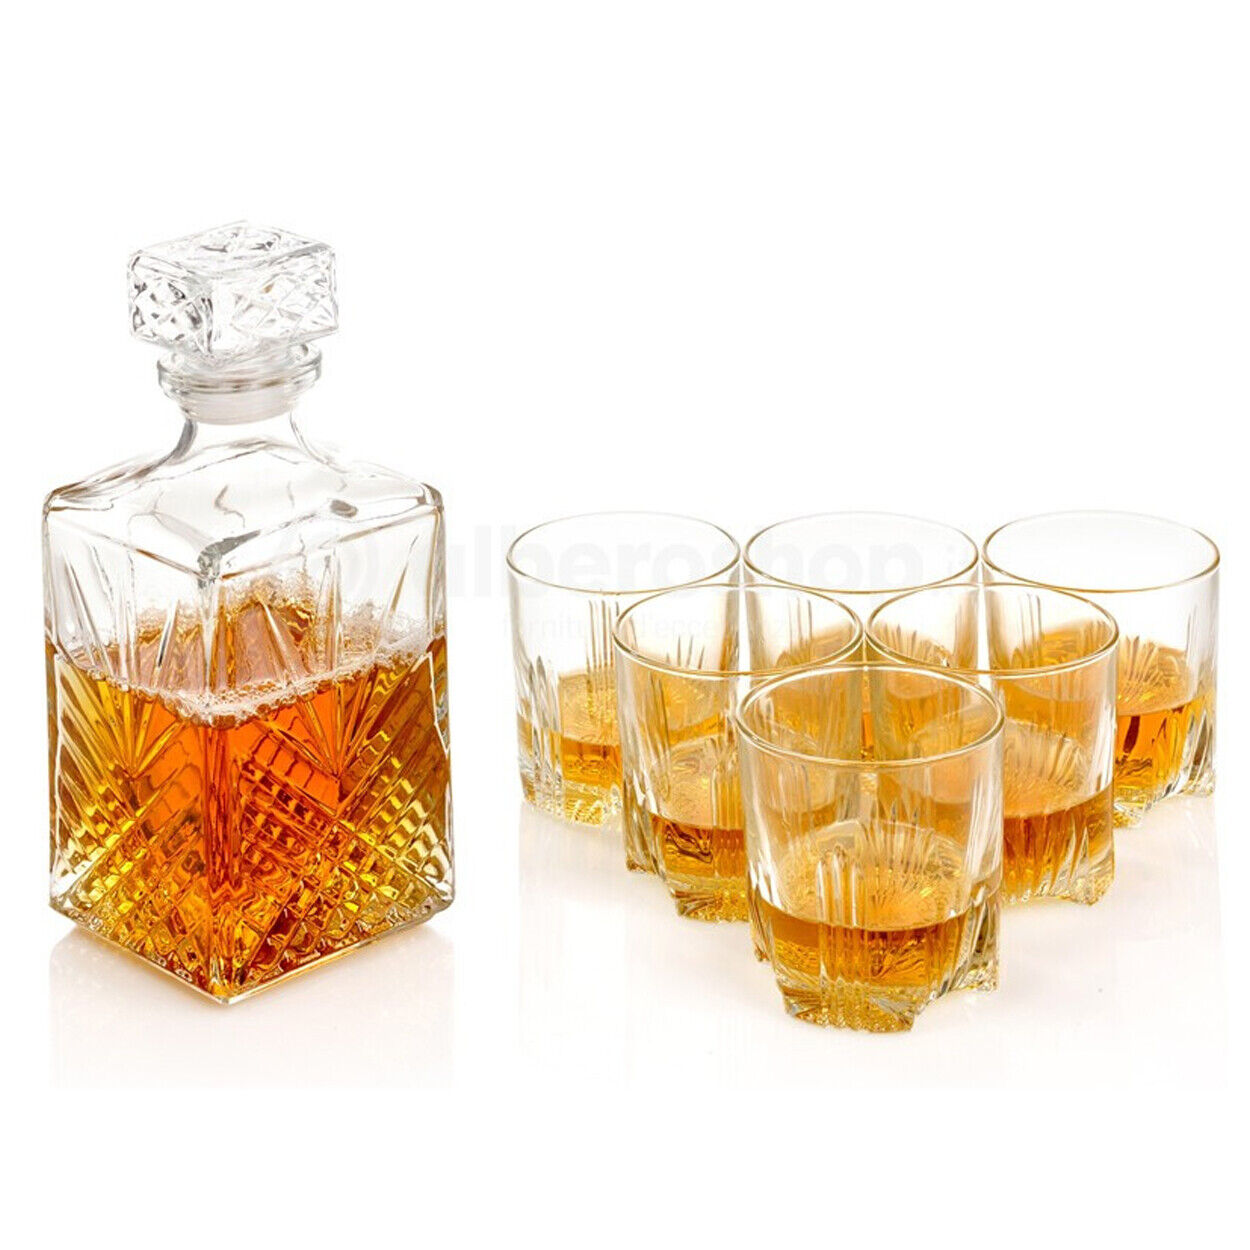 Whisky Decanter Gift Box Set 7 Piece Bormioli Rocco Whiskey Tumblers Glasses